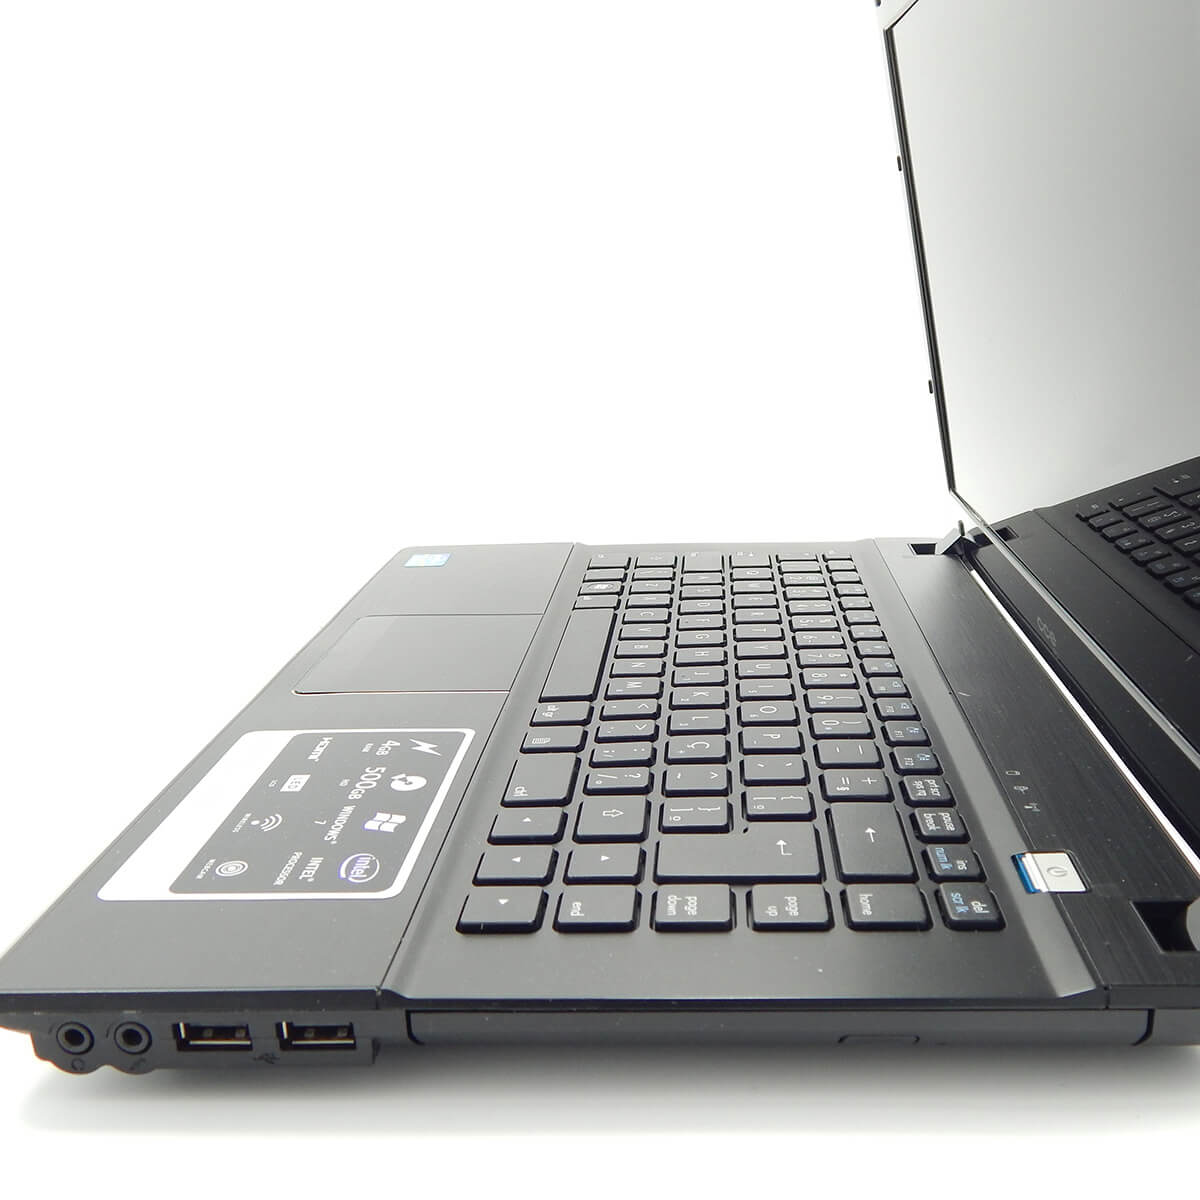 Notebook CCE WM545B I5-2410m 4gb 500gb - Seminovo